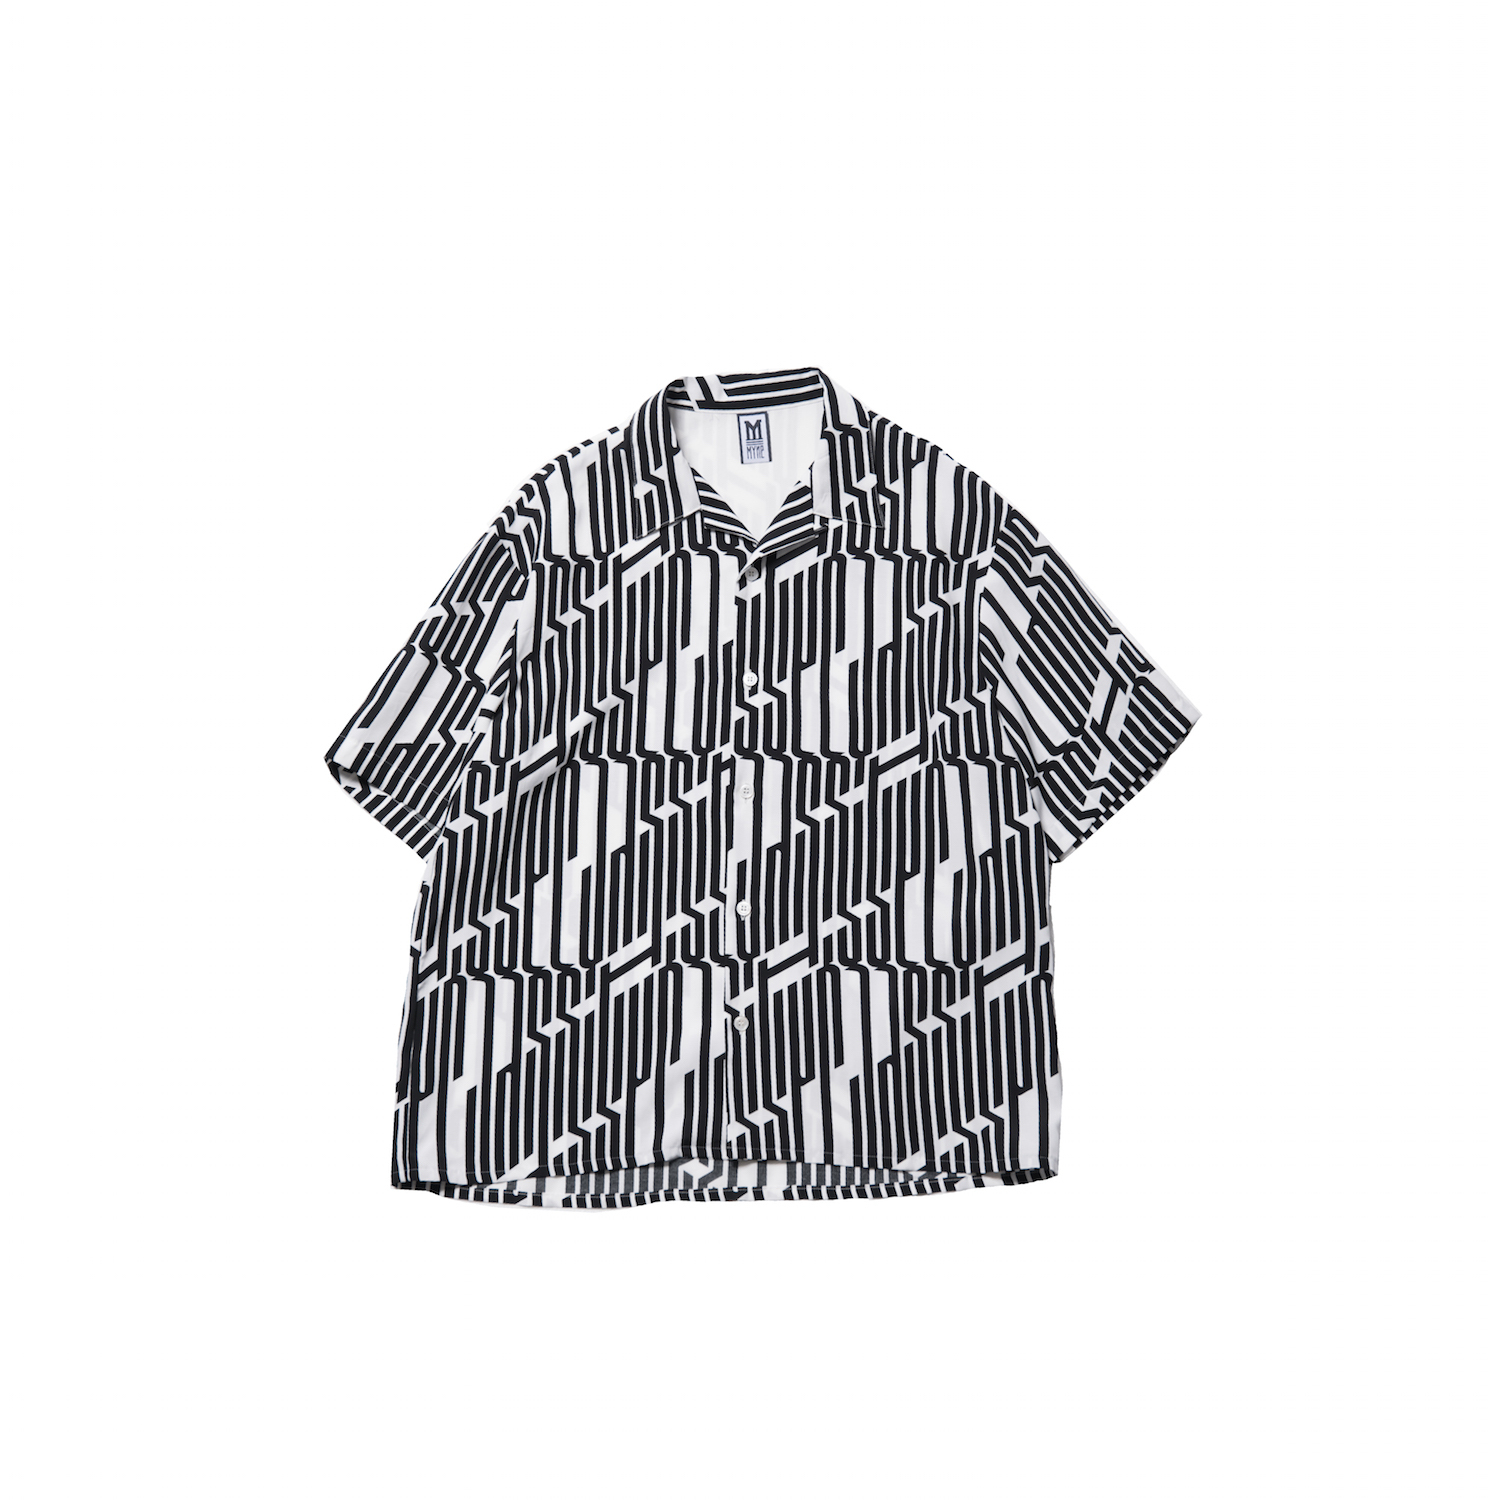 JAZZ IT UP HALF SHIRT / WHITE - 画像1